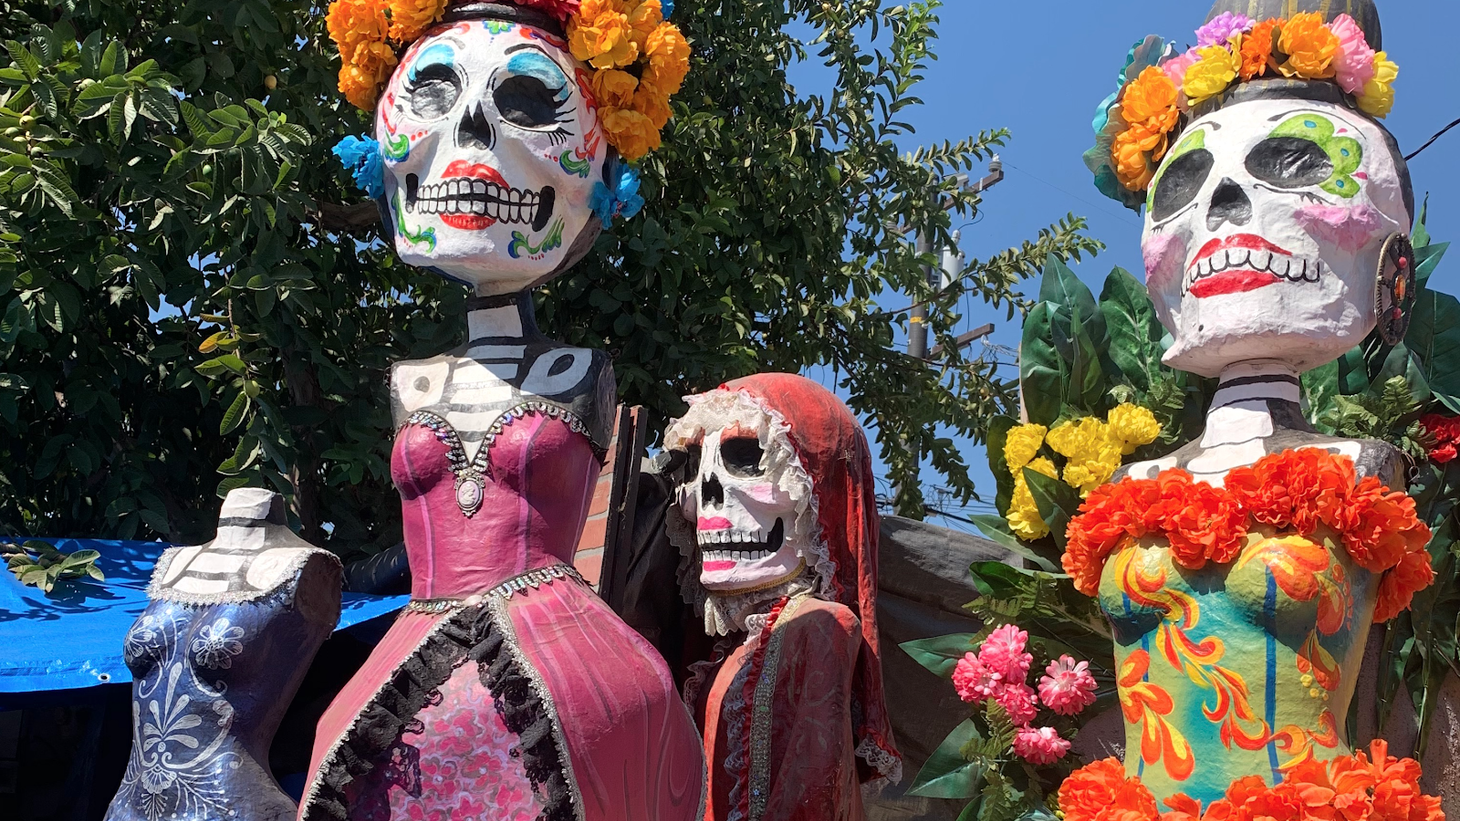 La Catrina sculptures up to 14' tall by artist Ricardo Soltero will be viewable at 3rd Street Promenade and the Santa Monica Pier beginning Saturday, October 31 - Monday, November 2.